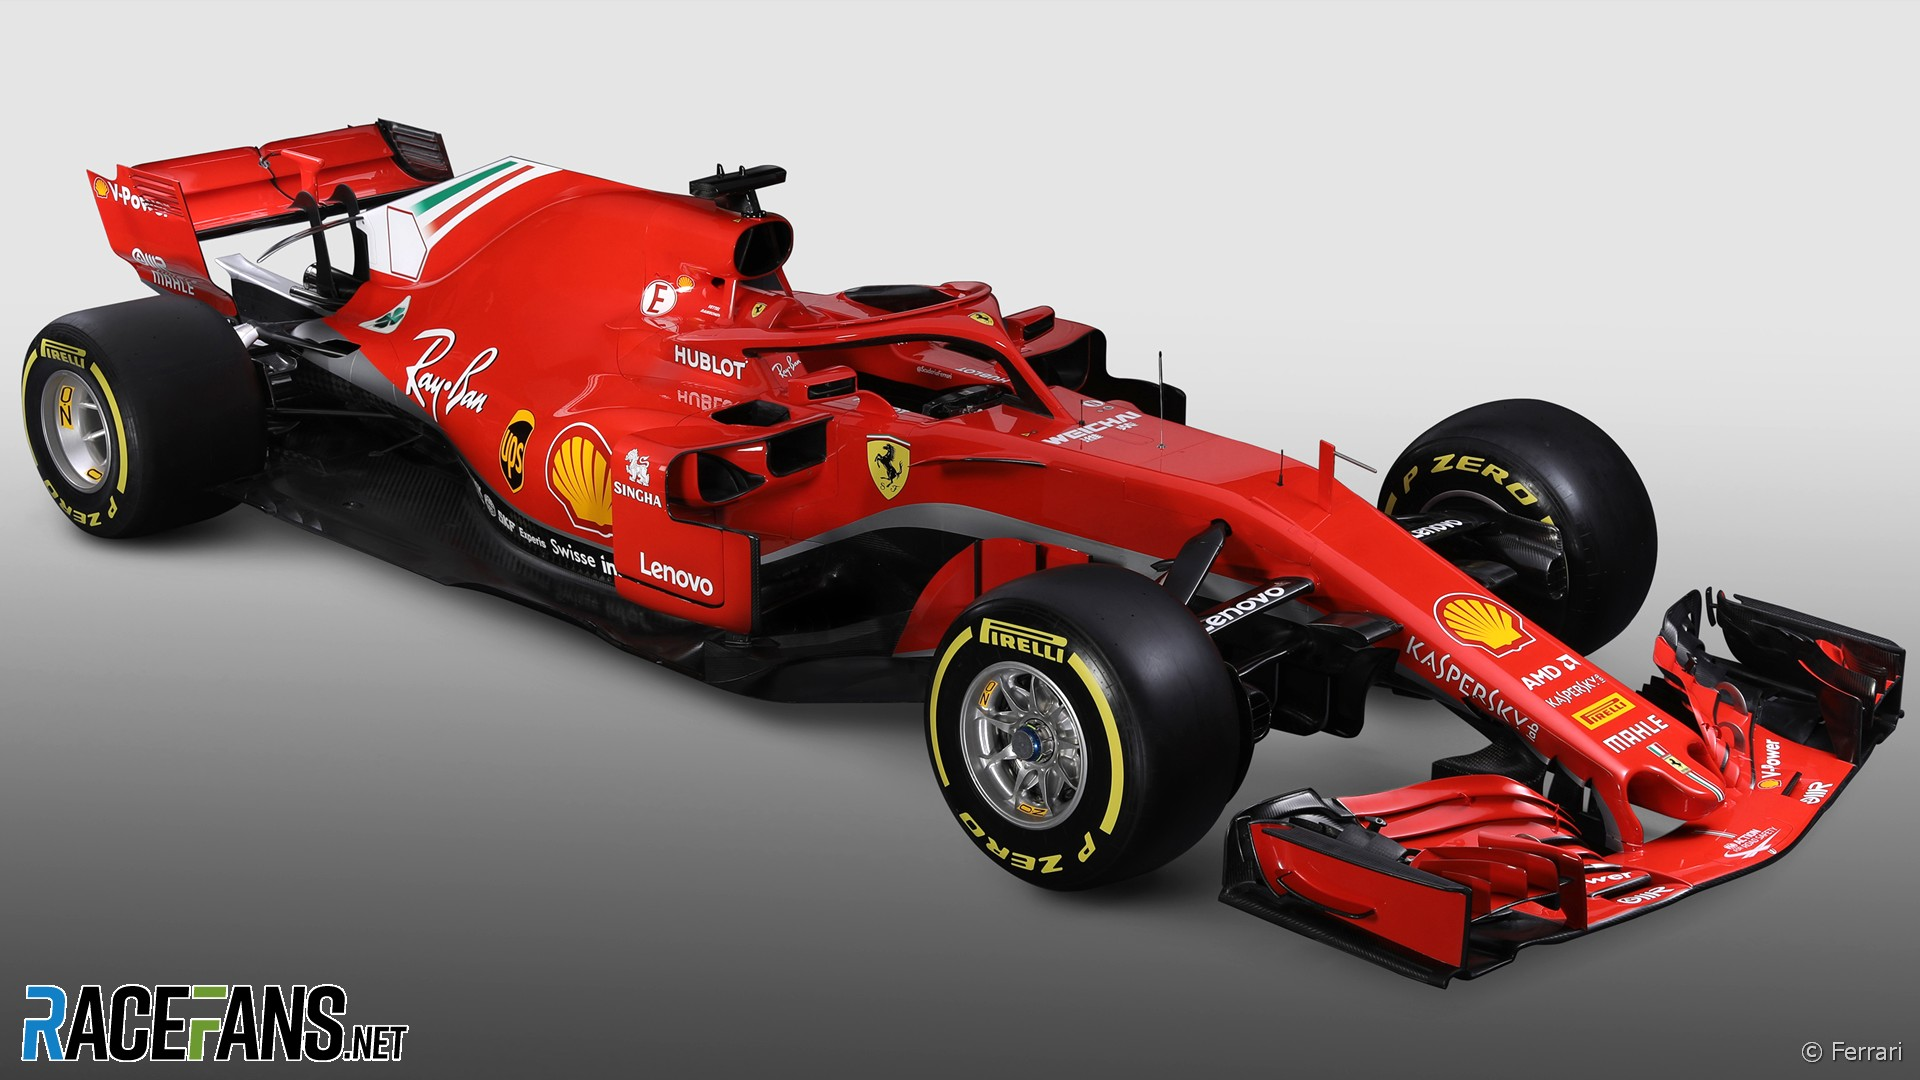 Ferrari unveil their new F1 car for 2018 · RaceFans